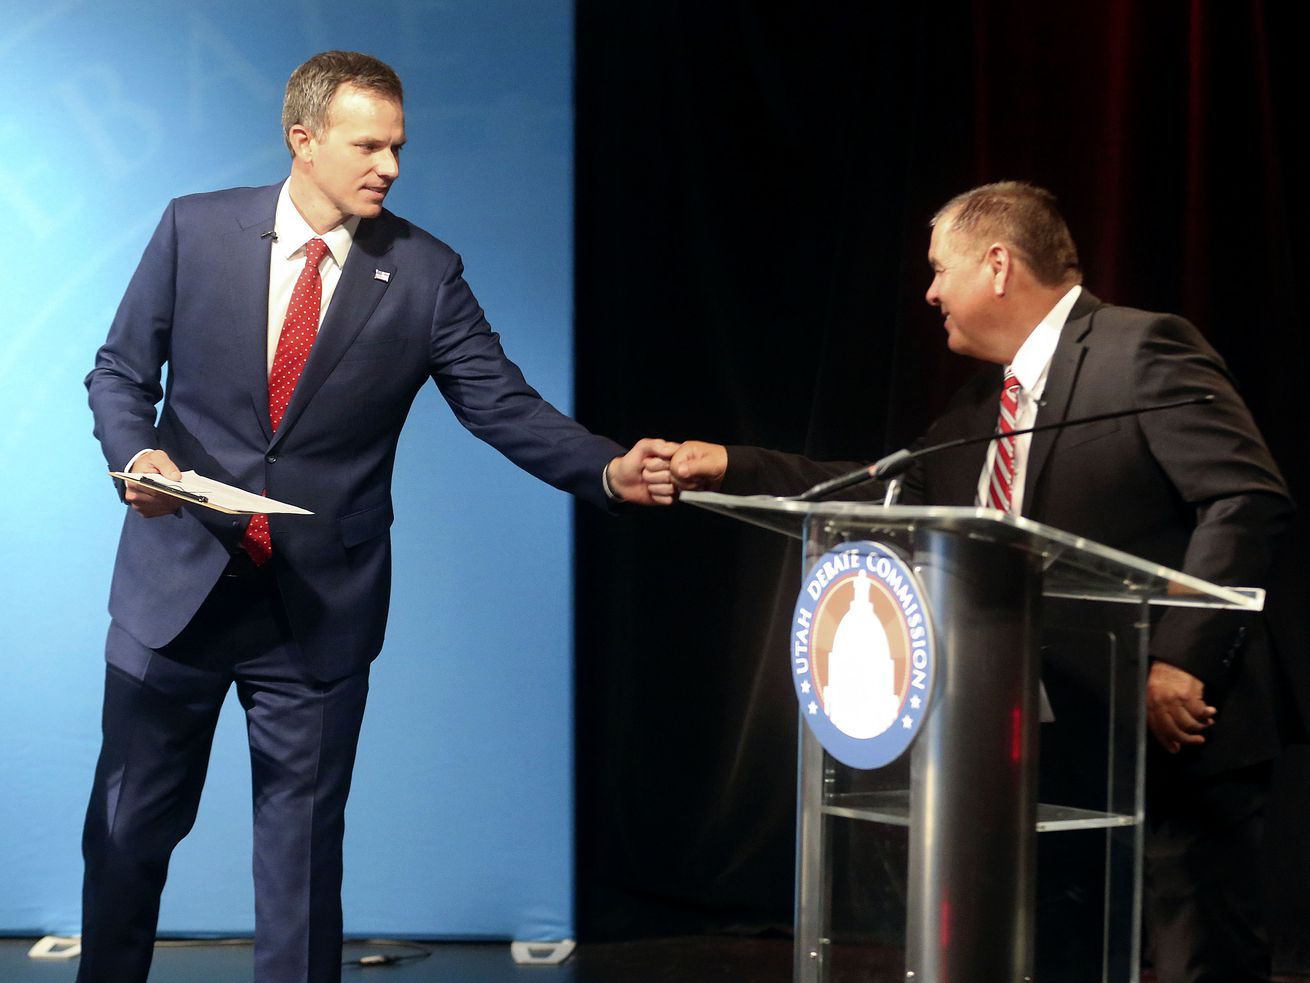 Nasty political bickering? Here's one Utah race where that's not happening